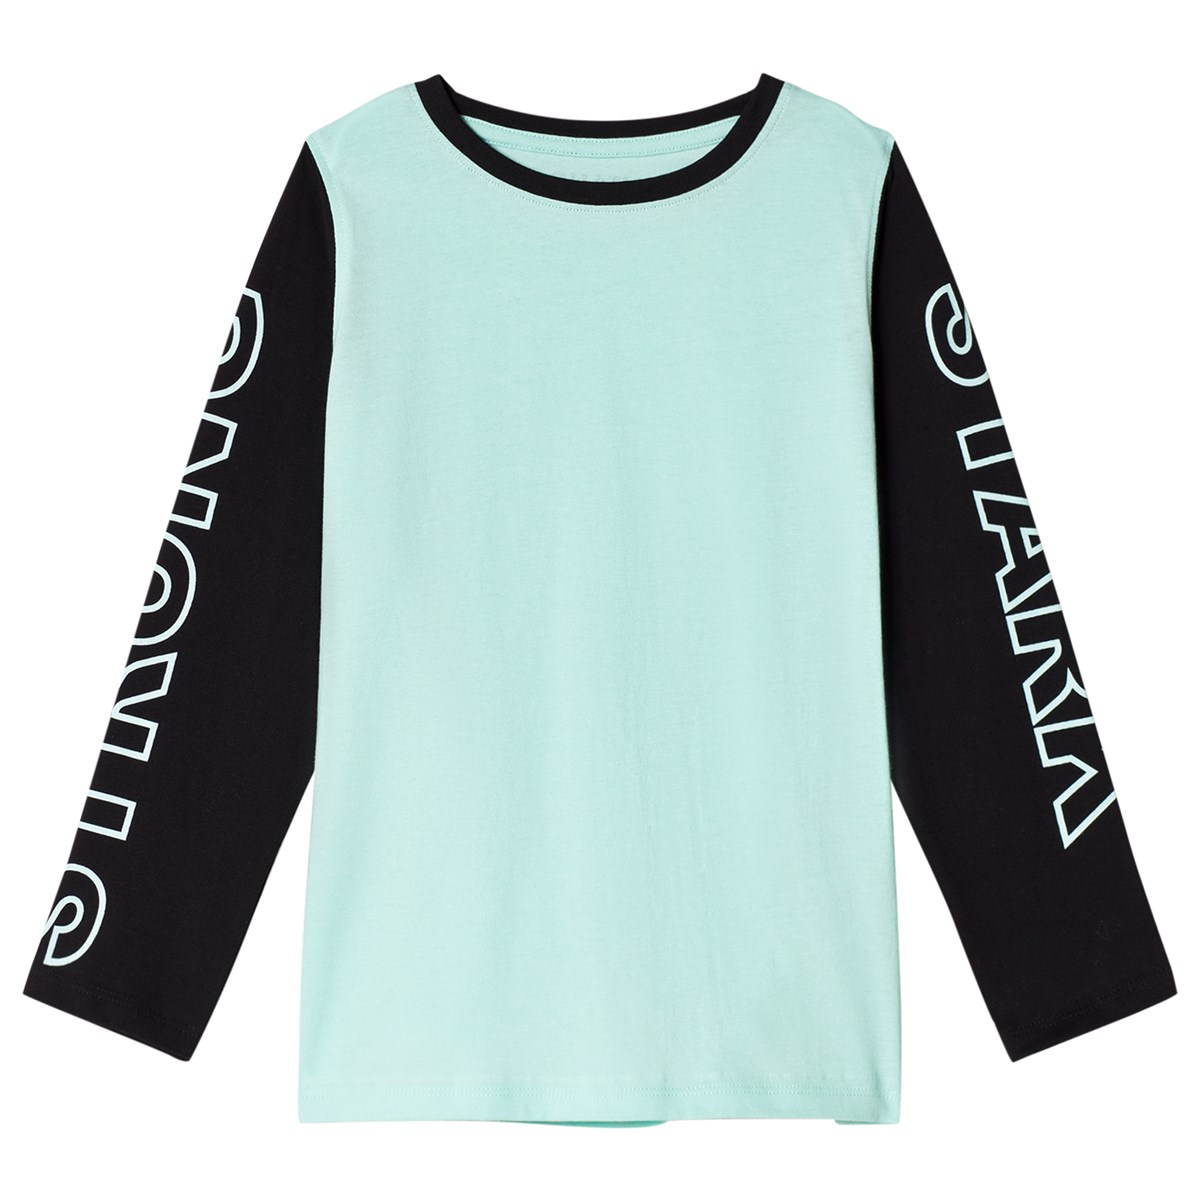 The BRAND Black And Turquoise Strong T-Shirt